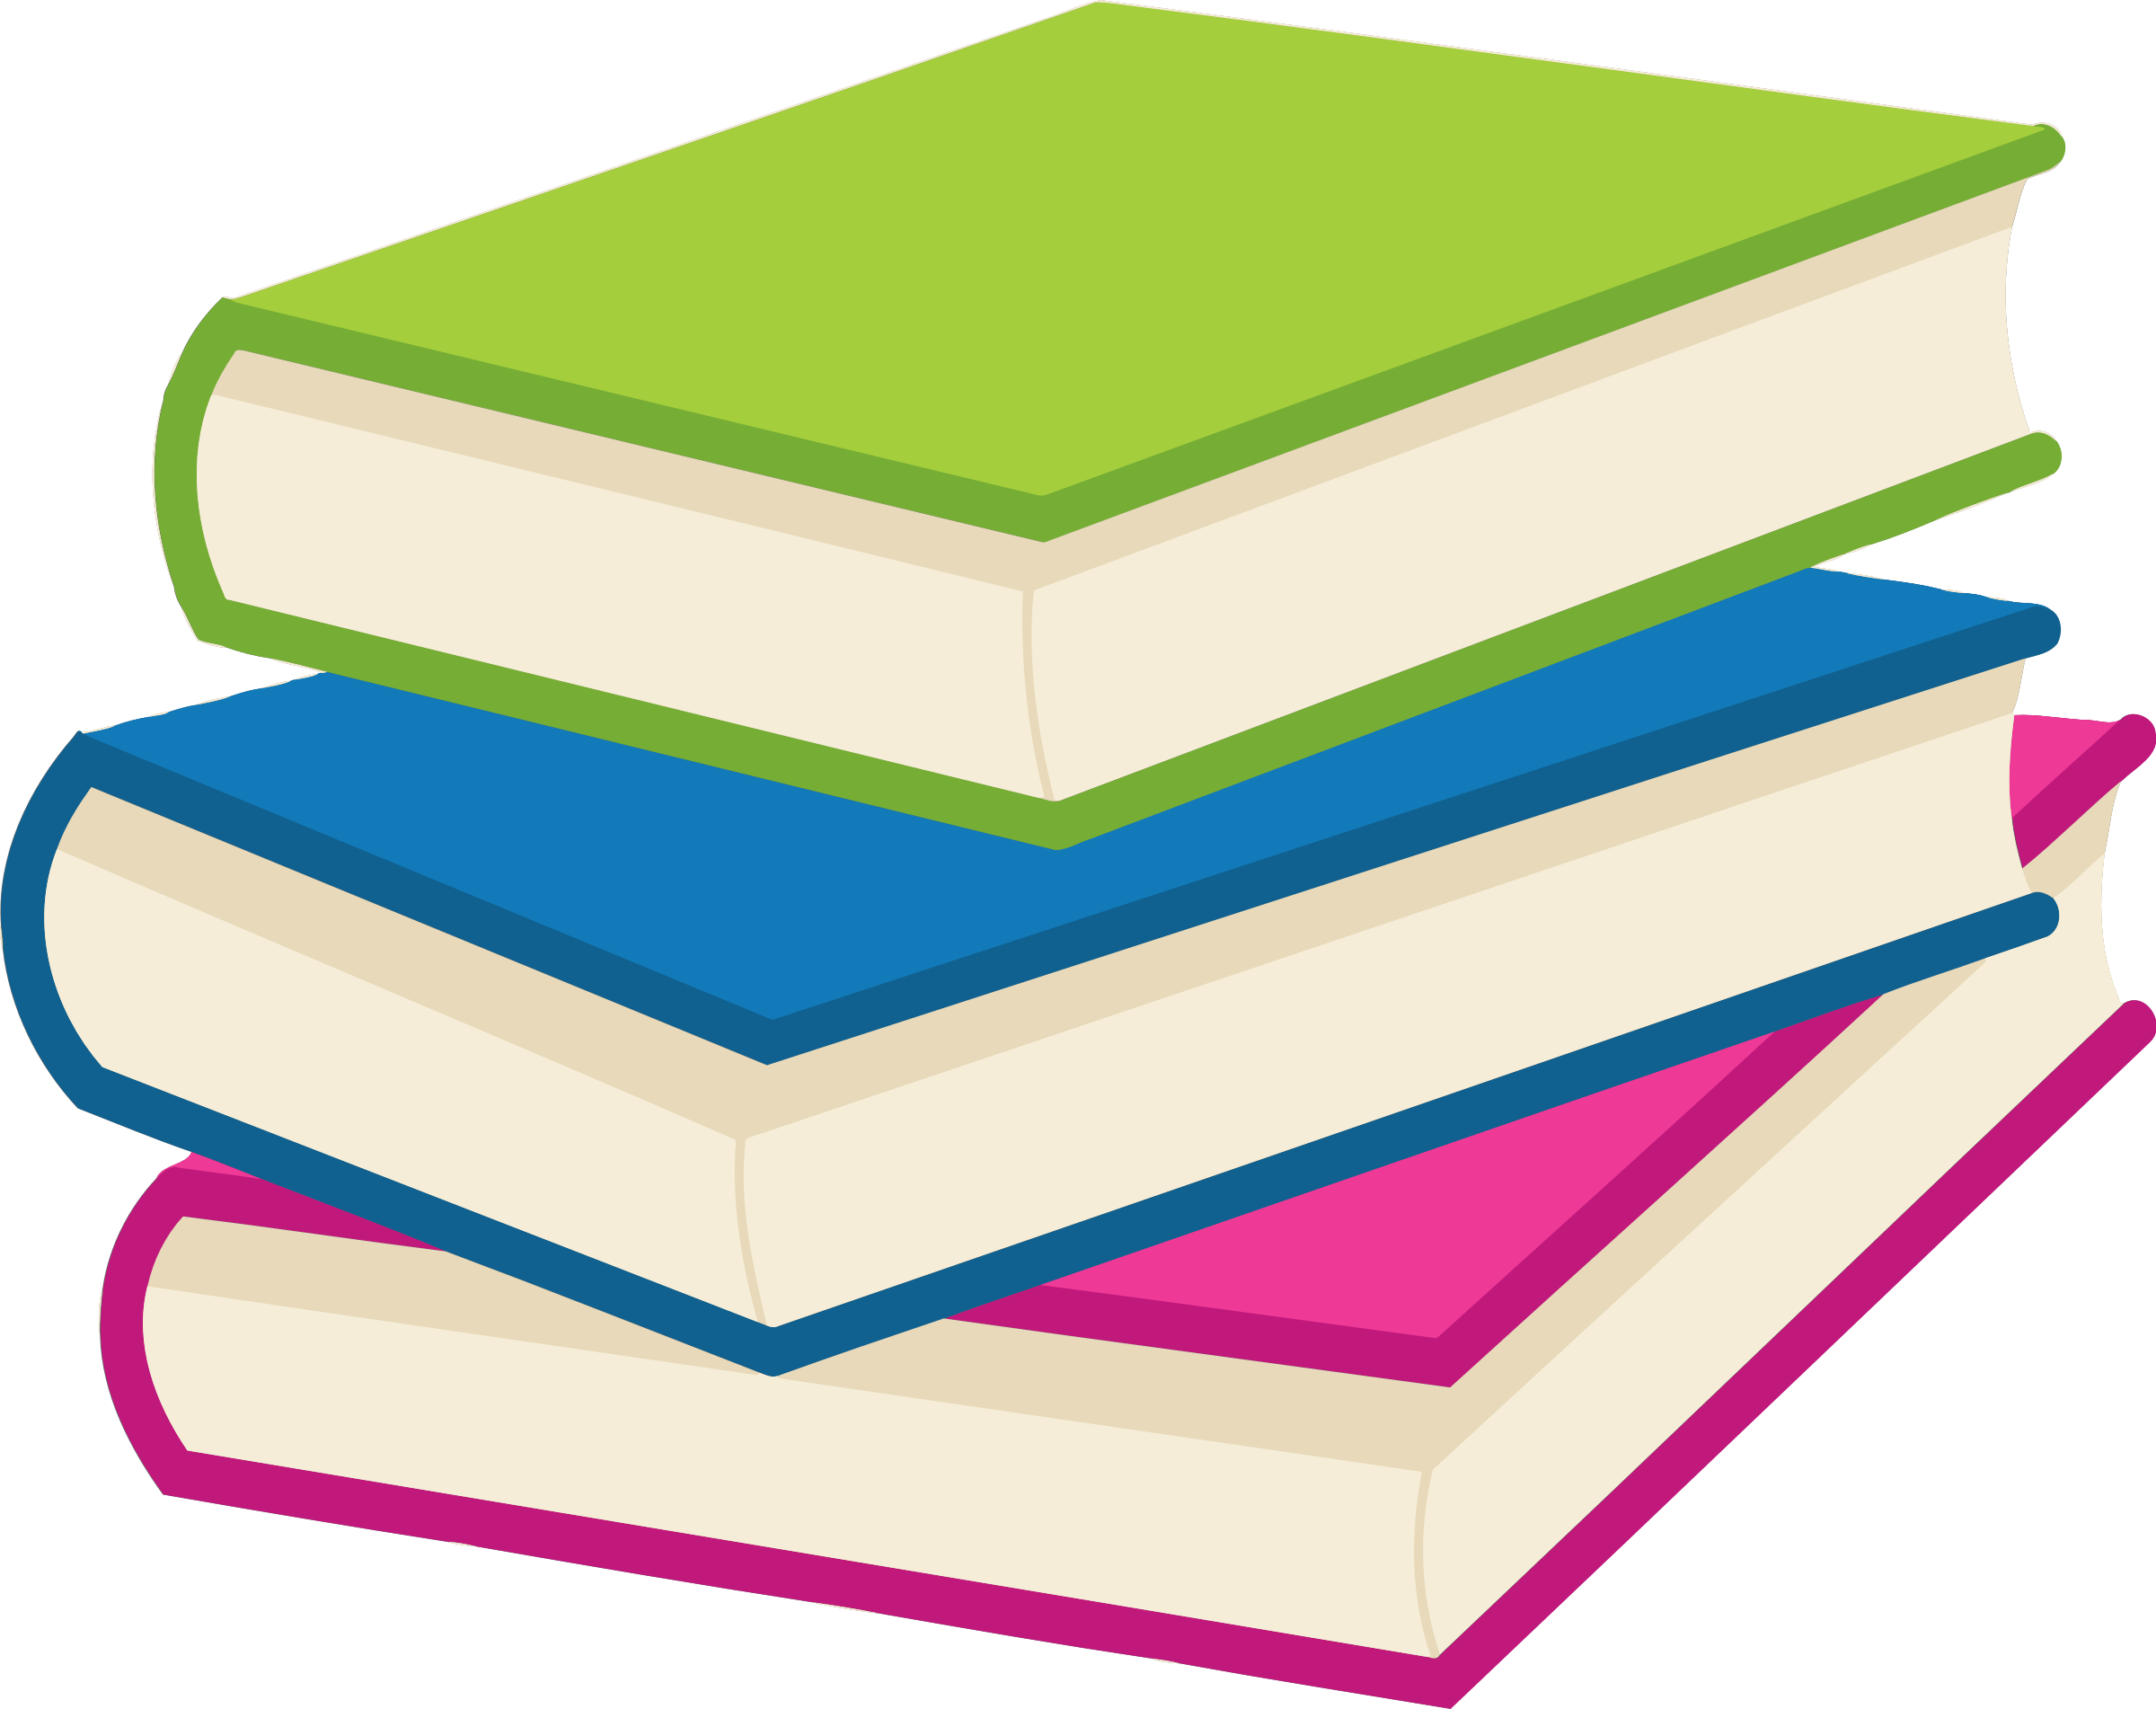 Stack of book clipart image library Clipart - Stack of books image library